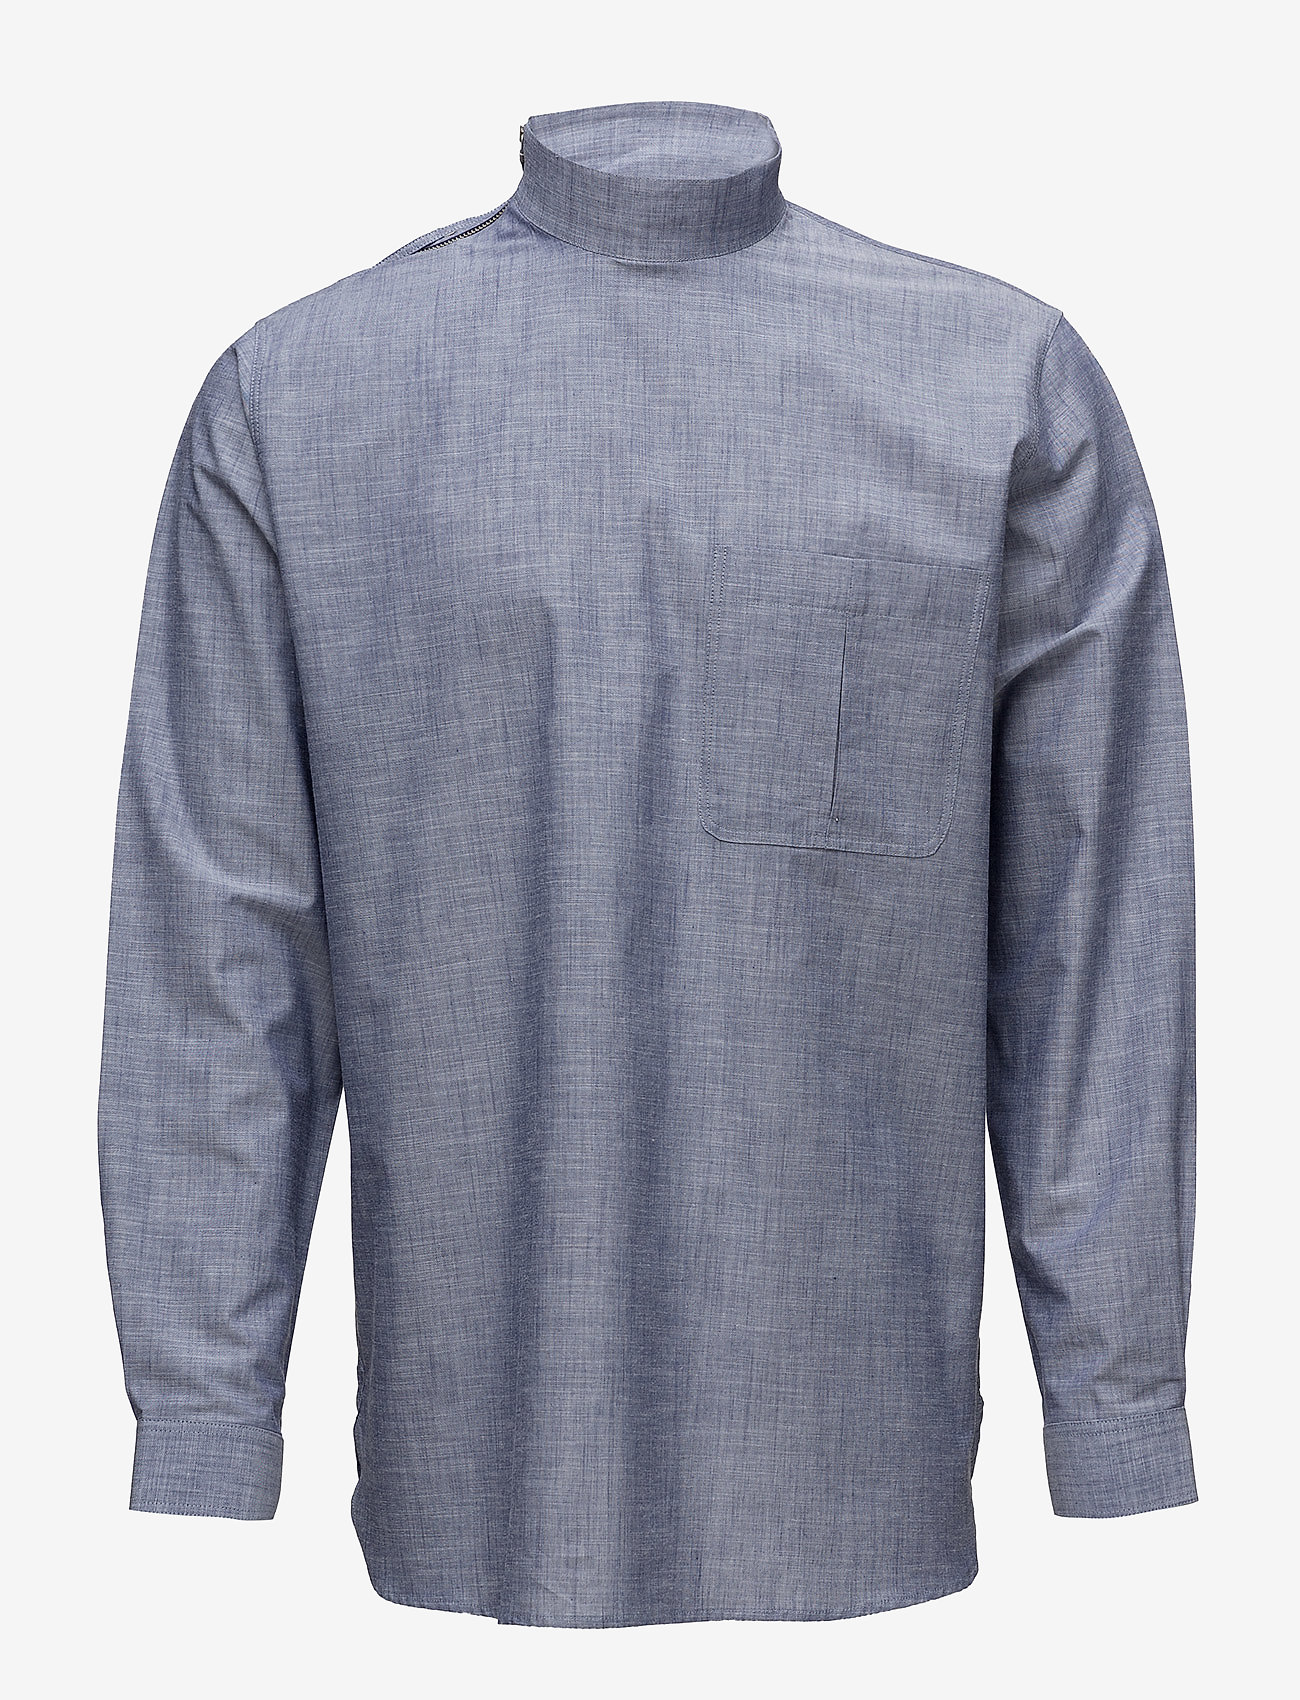 Tonsure - Collar stand shirt with zipper detail - chemises business - chambray